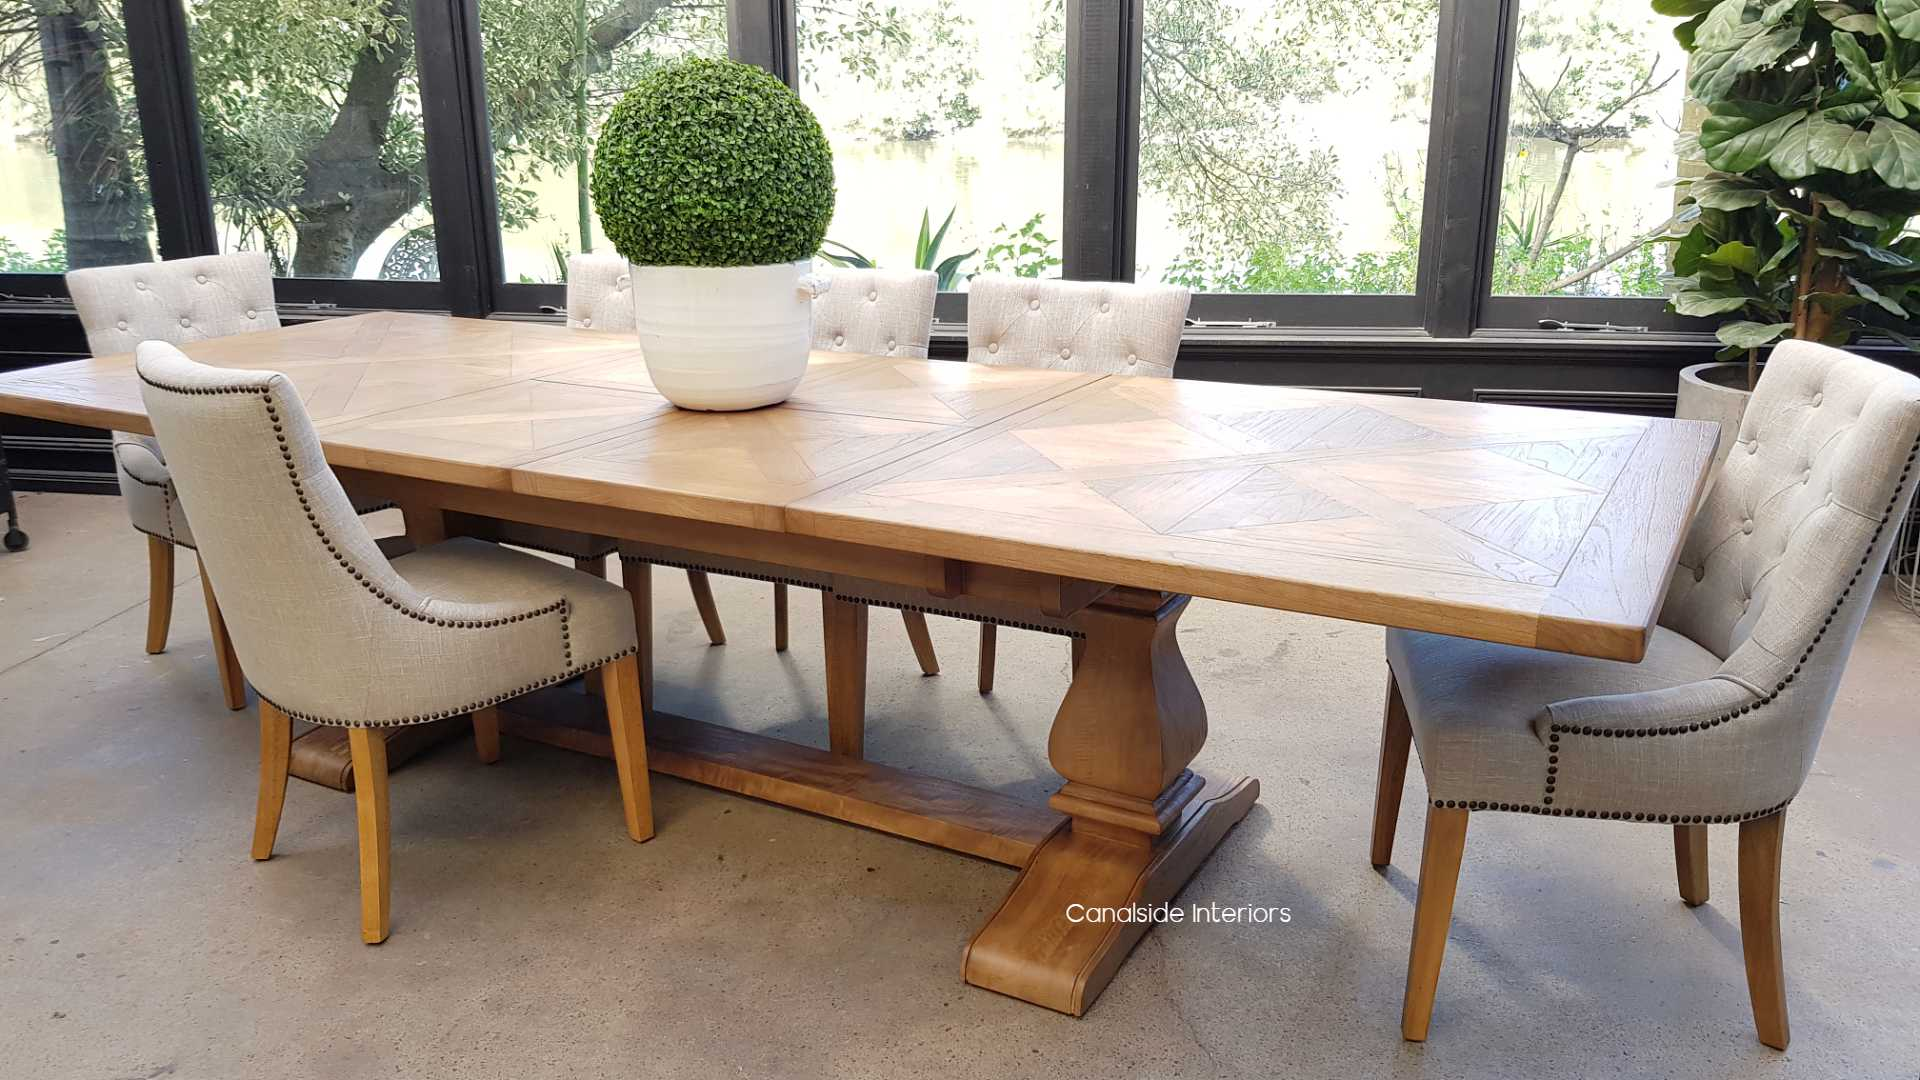 Hampton Bay Double Extension Parquetry Dining Table tables, hamptons, hampton table, provincial, plantation, dining tables, trestle base, dining room